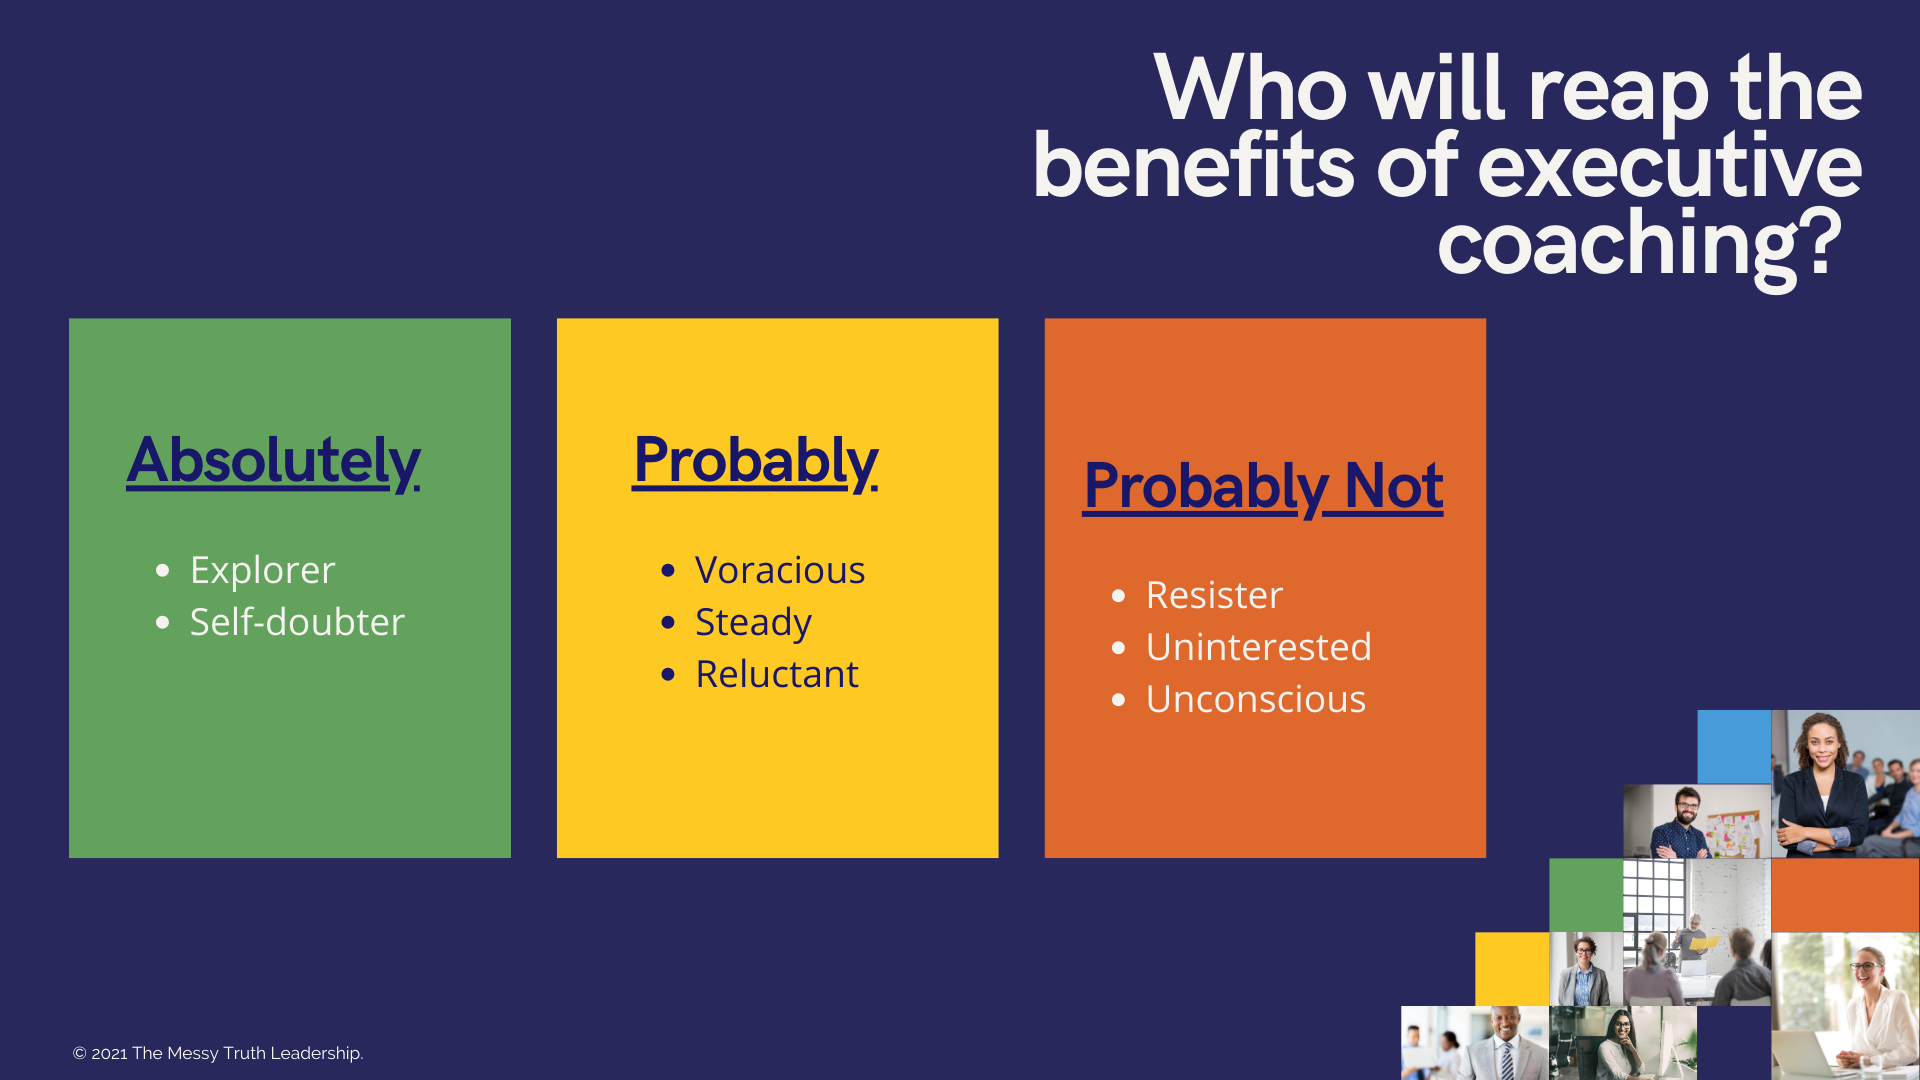 Who will reap the benefits of executive coaching?